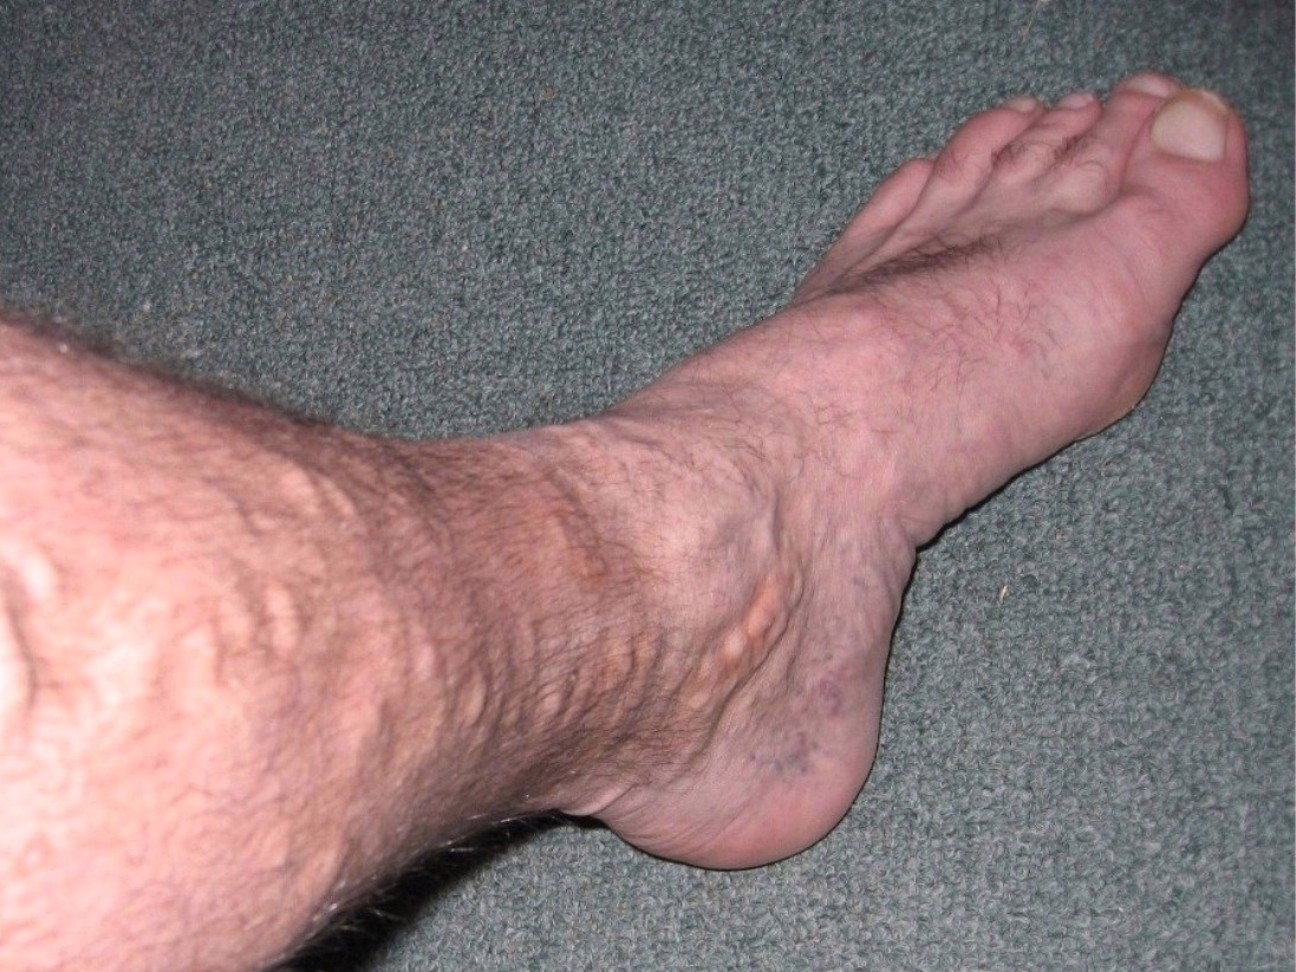 person with vericose veins in their leg